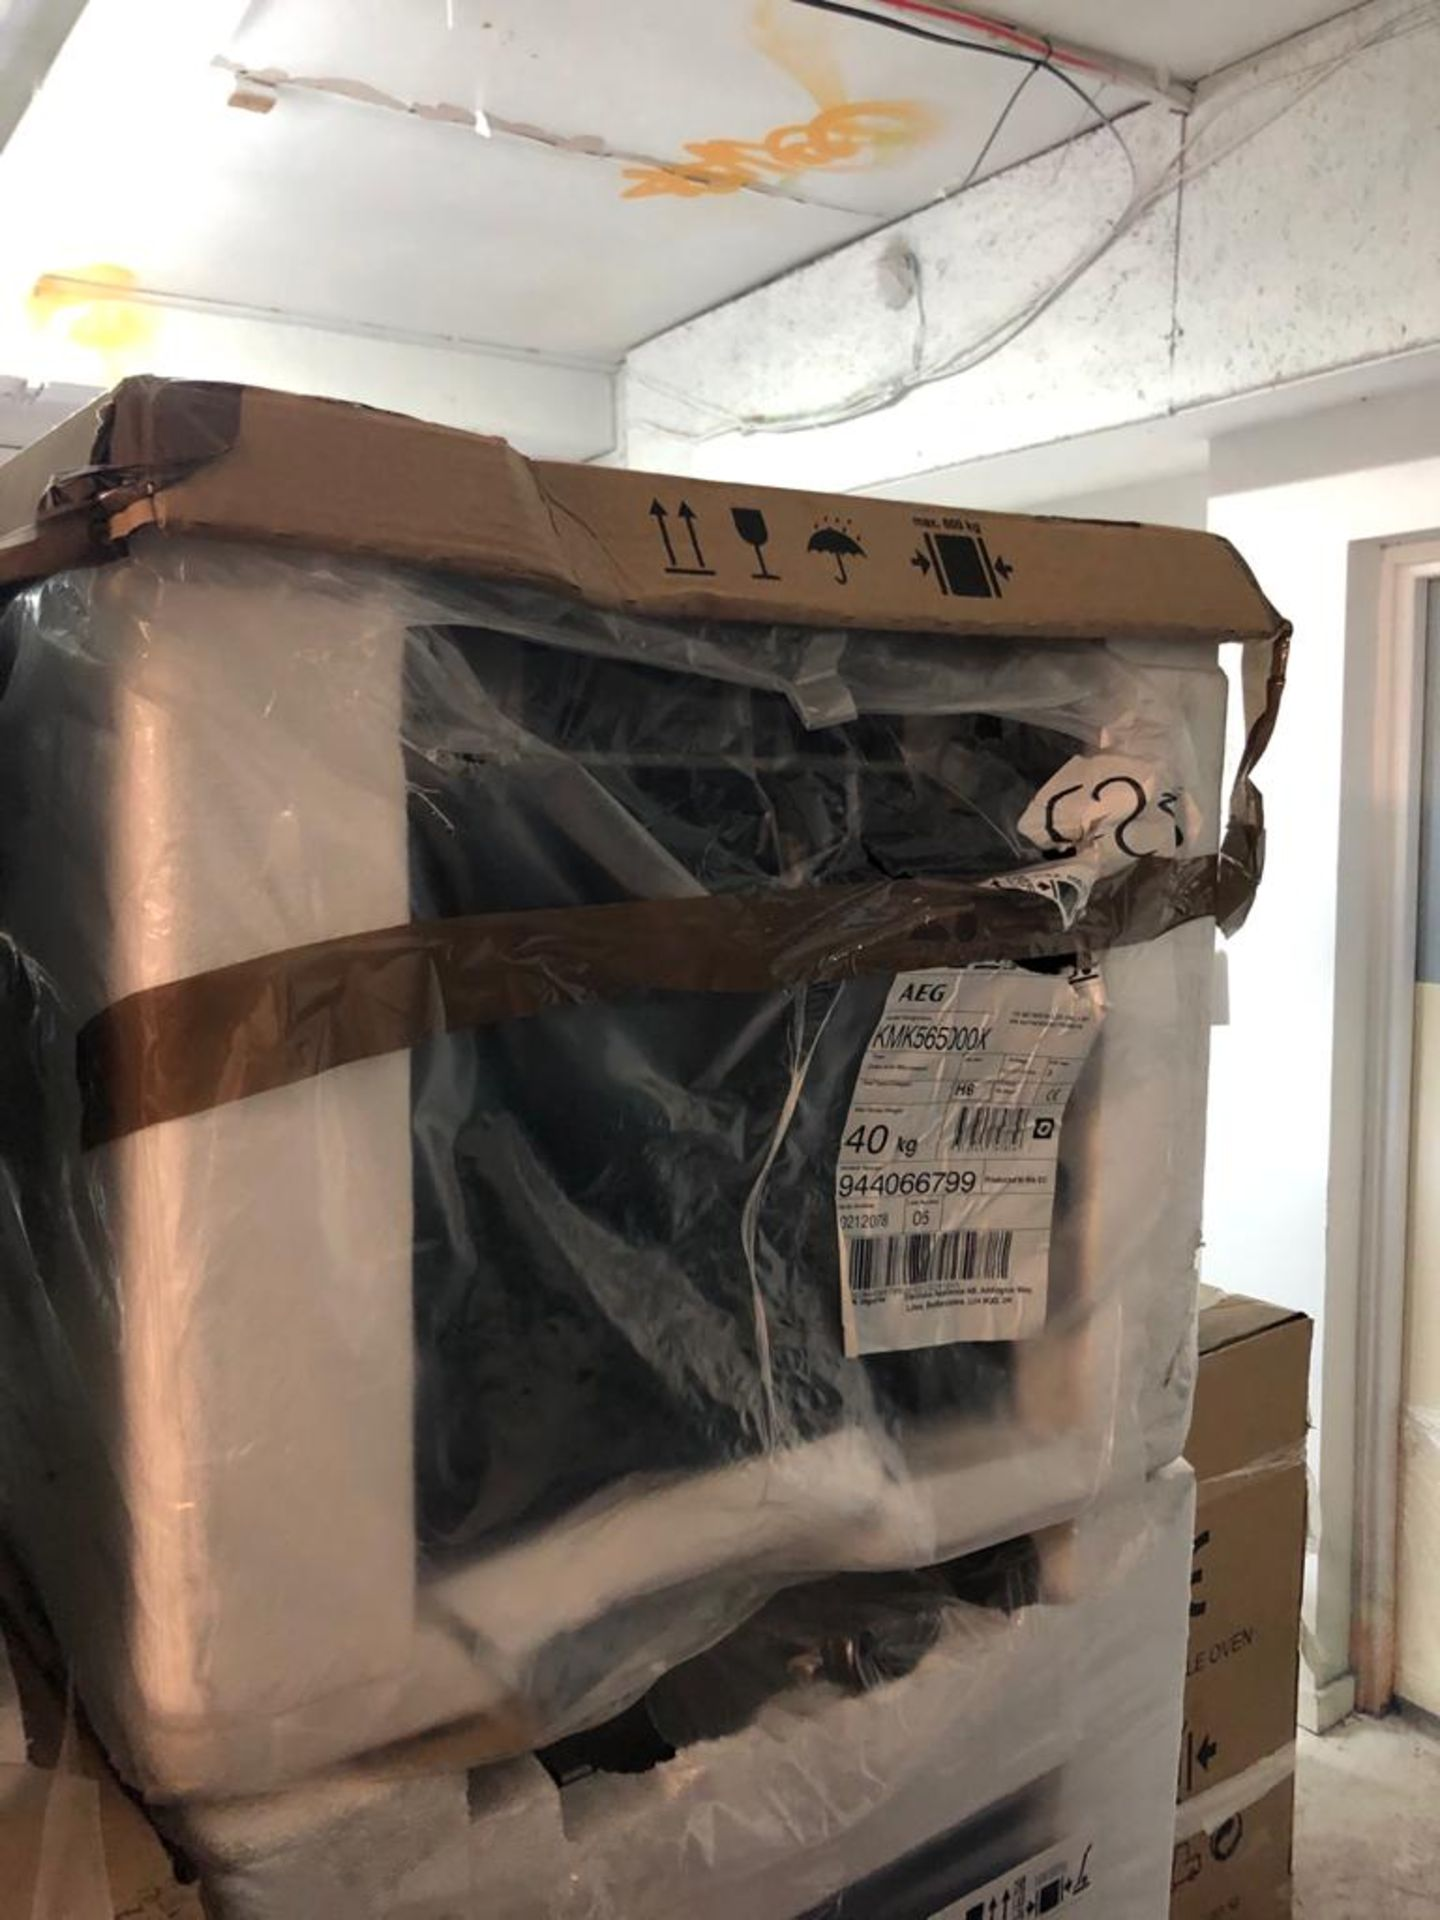 BRAND NEW PACKAGED AEG KMK565000X Combination Microwave Oven